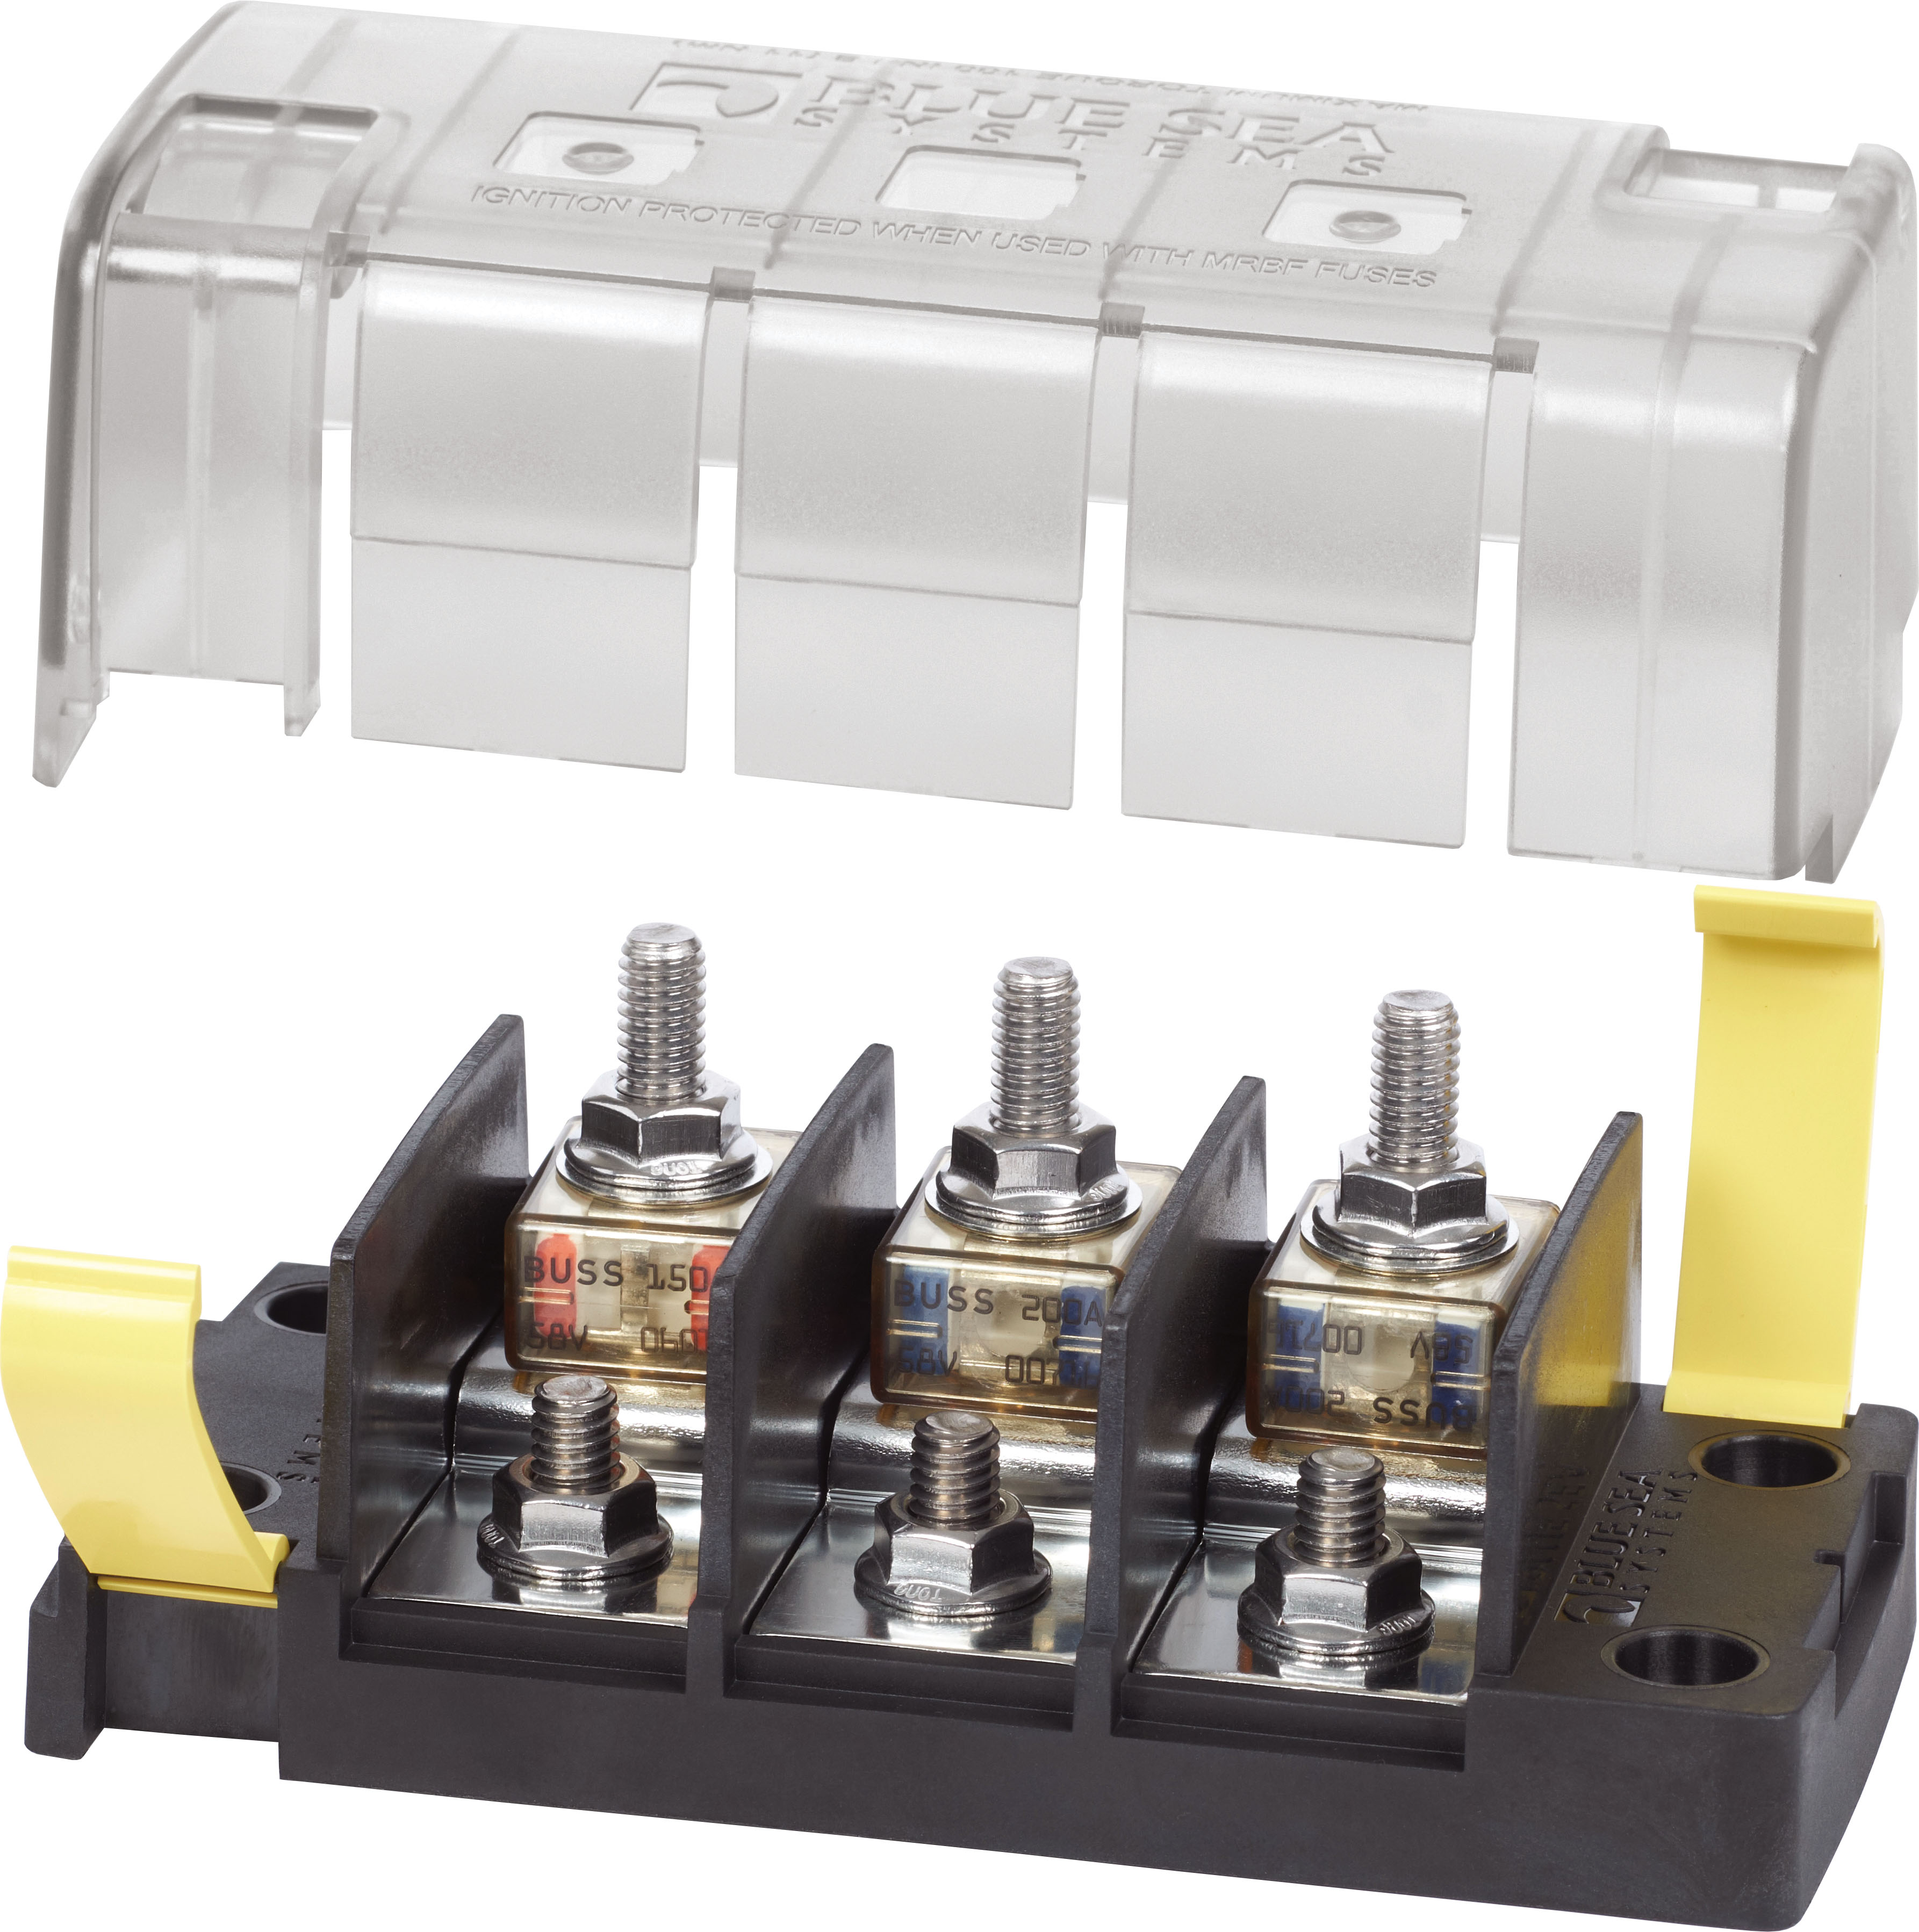 Mrbf Surface Mount Fuse Block - Independent Source